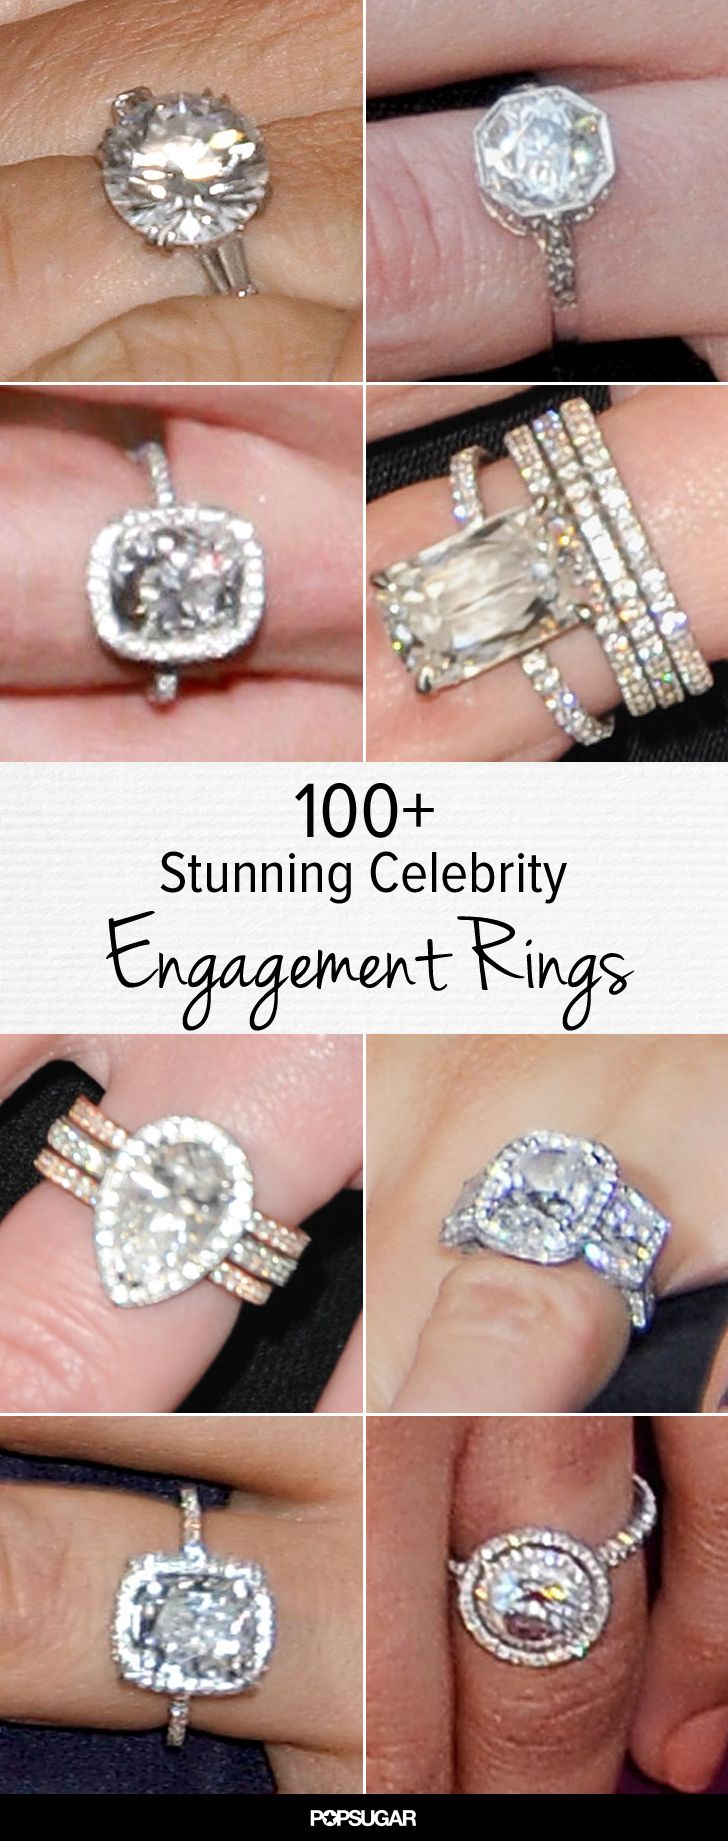 The Very Best Celebrity Engagement Rings